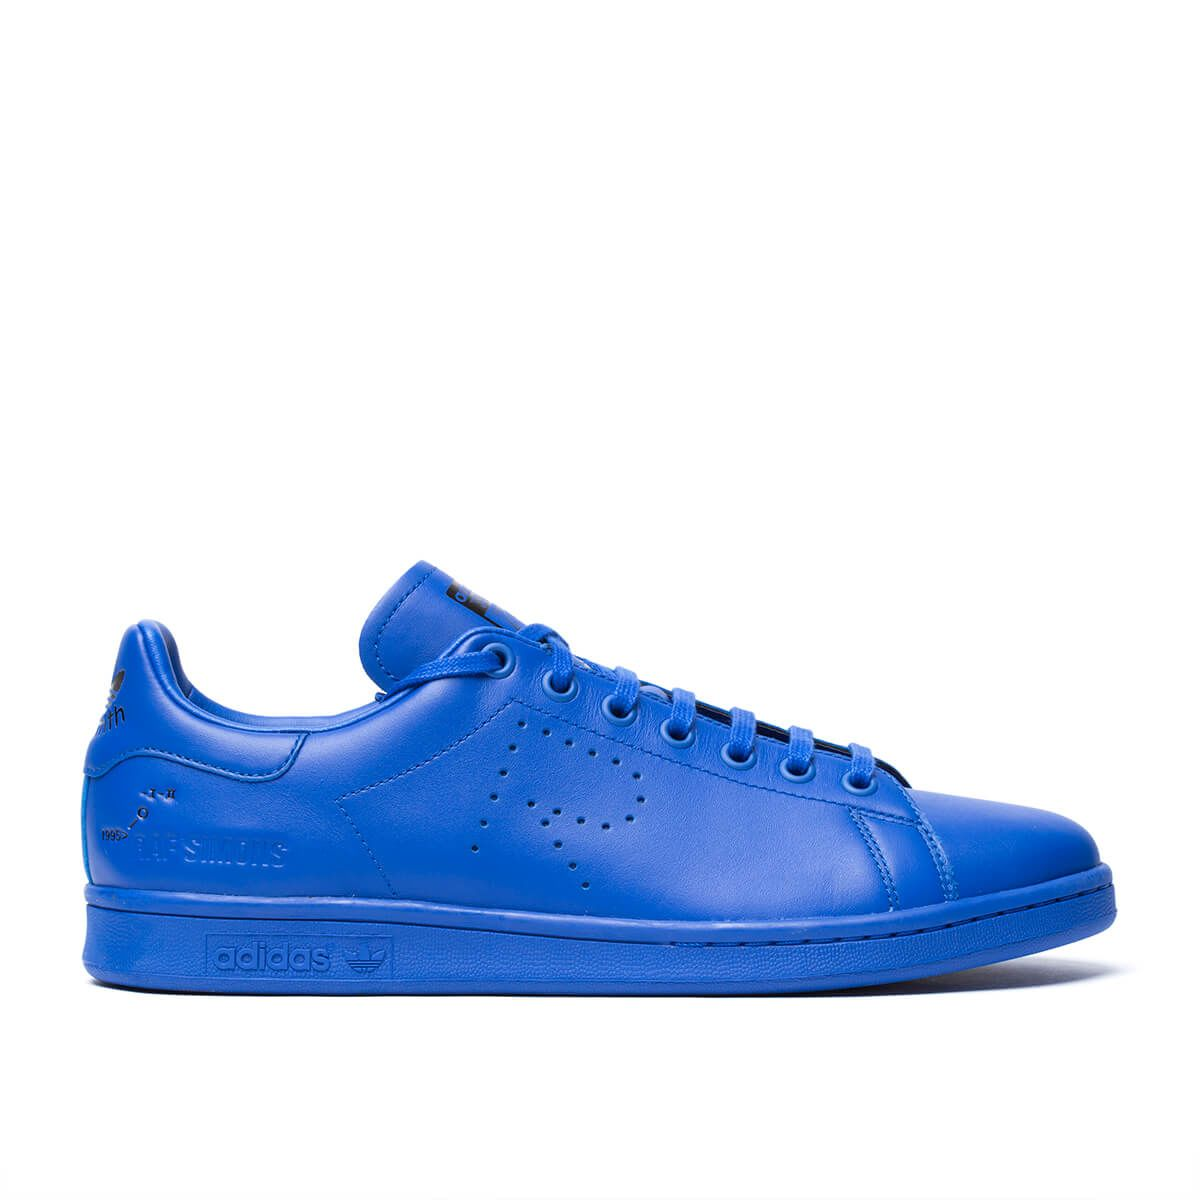 ADIDAS BY RAF SIMONS Rs Stan Smith Sneakers in Power Blue